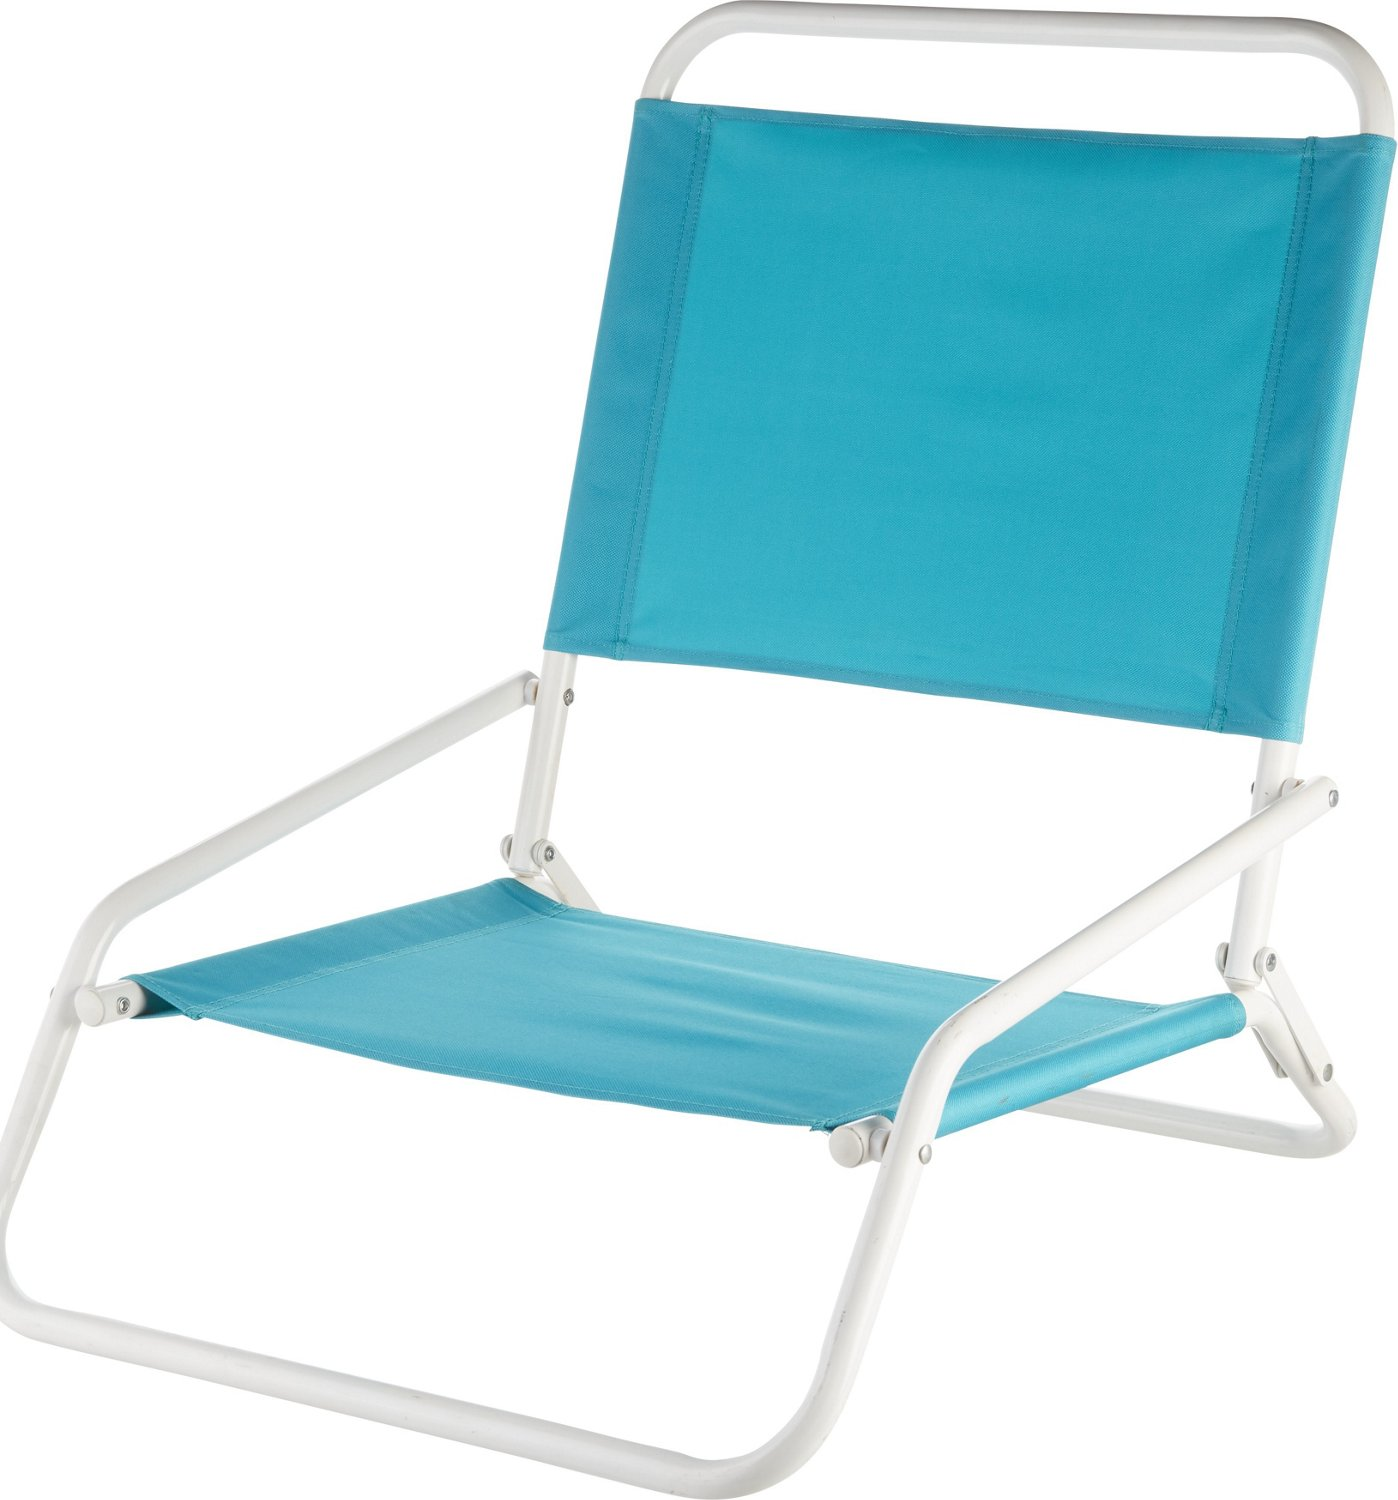 Oversized Beach Chair Beach Chairs Beach Loungers Waterside Chairs Folding Chairs